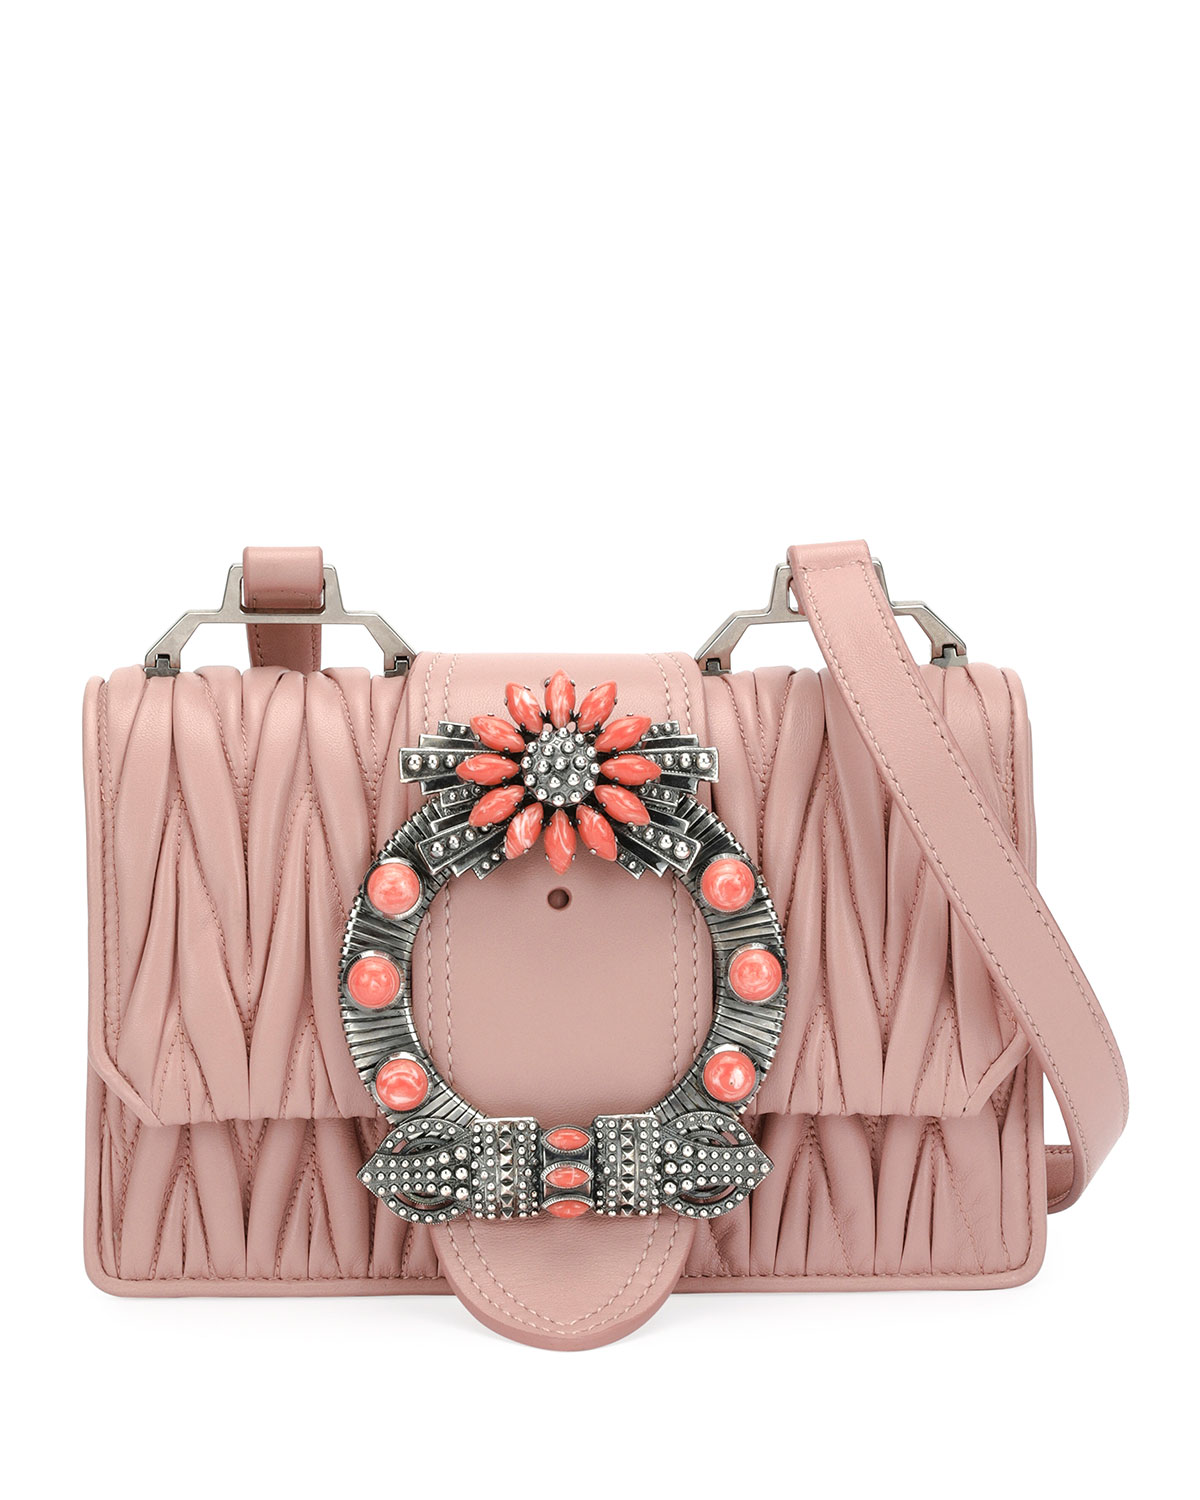 937c832a564 Miu Miu Miu Lady Matelassé Medium Shoulder Bag